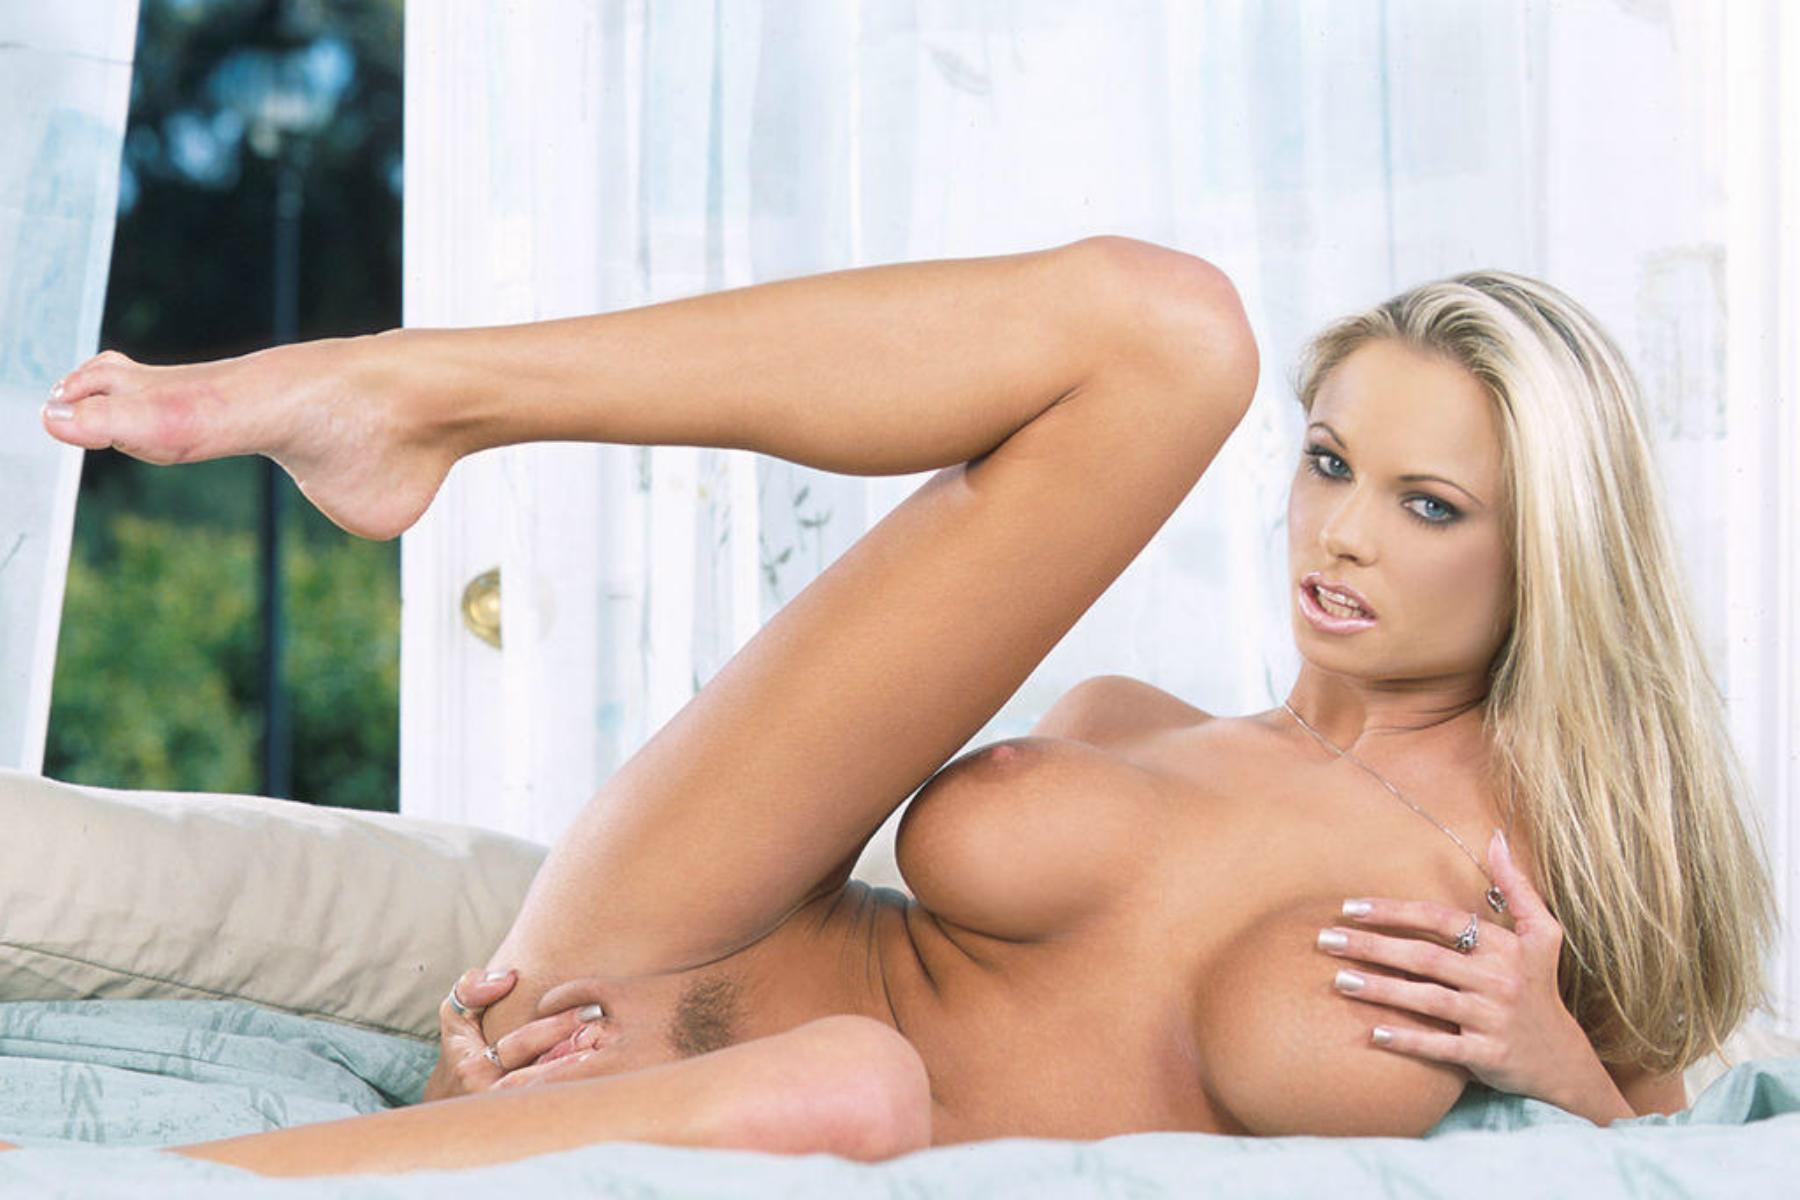 Mom briana banks has hot breasts free mobile porn photo